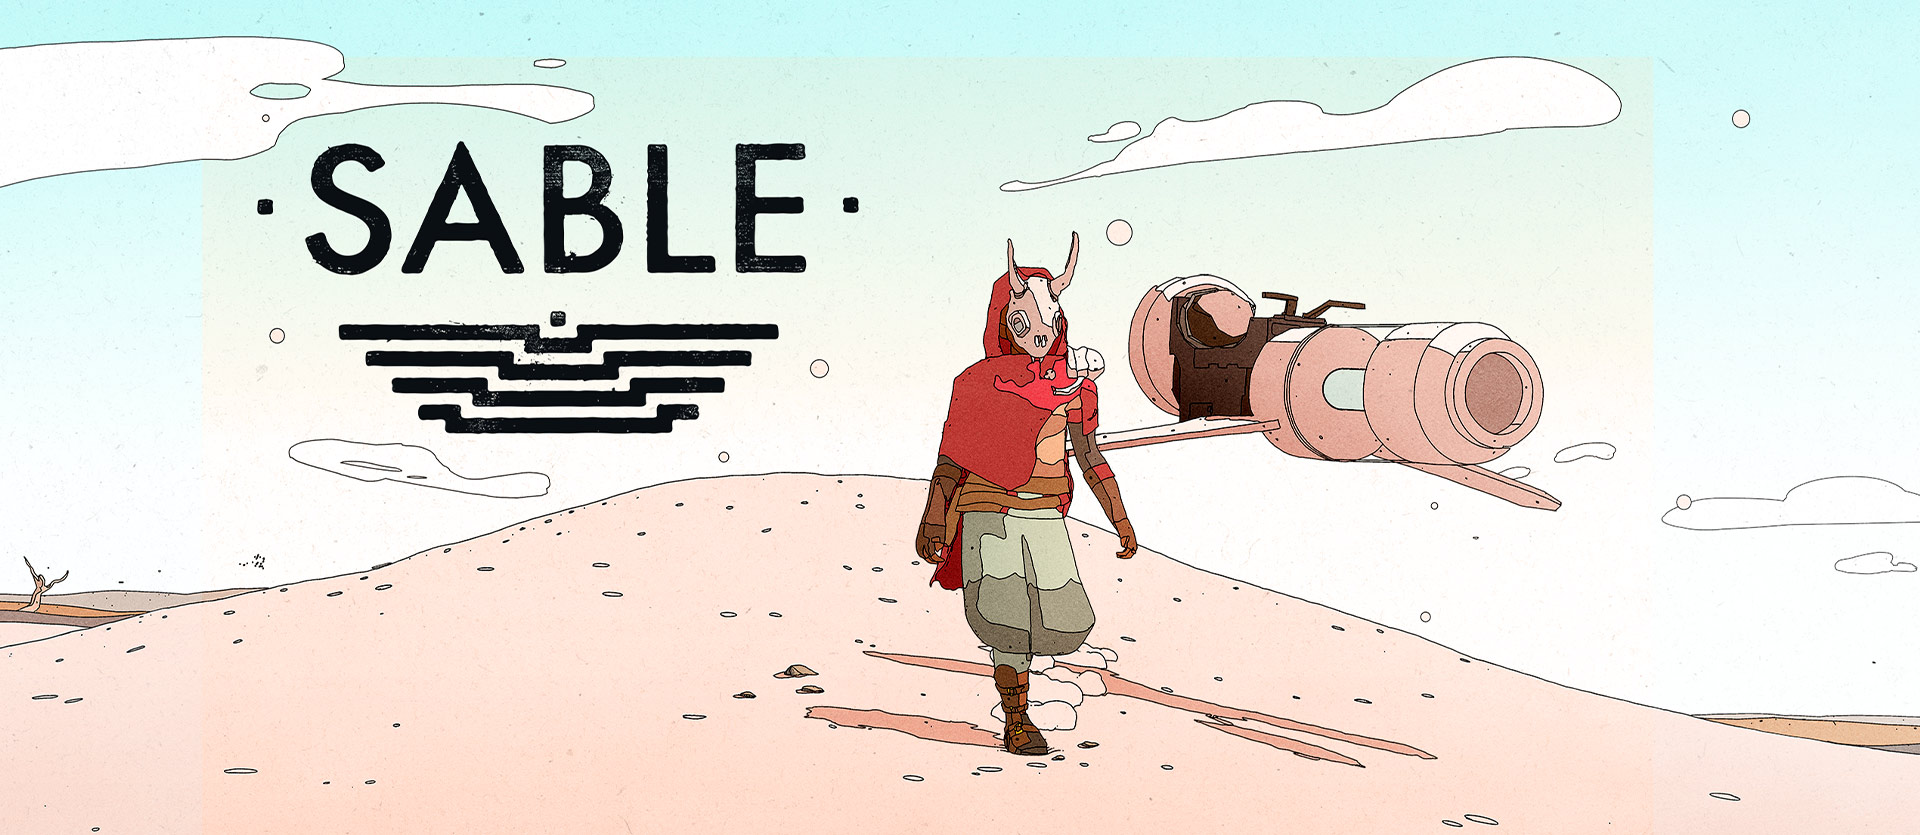 Sable logo, Sable in the desert with a hoverbike